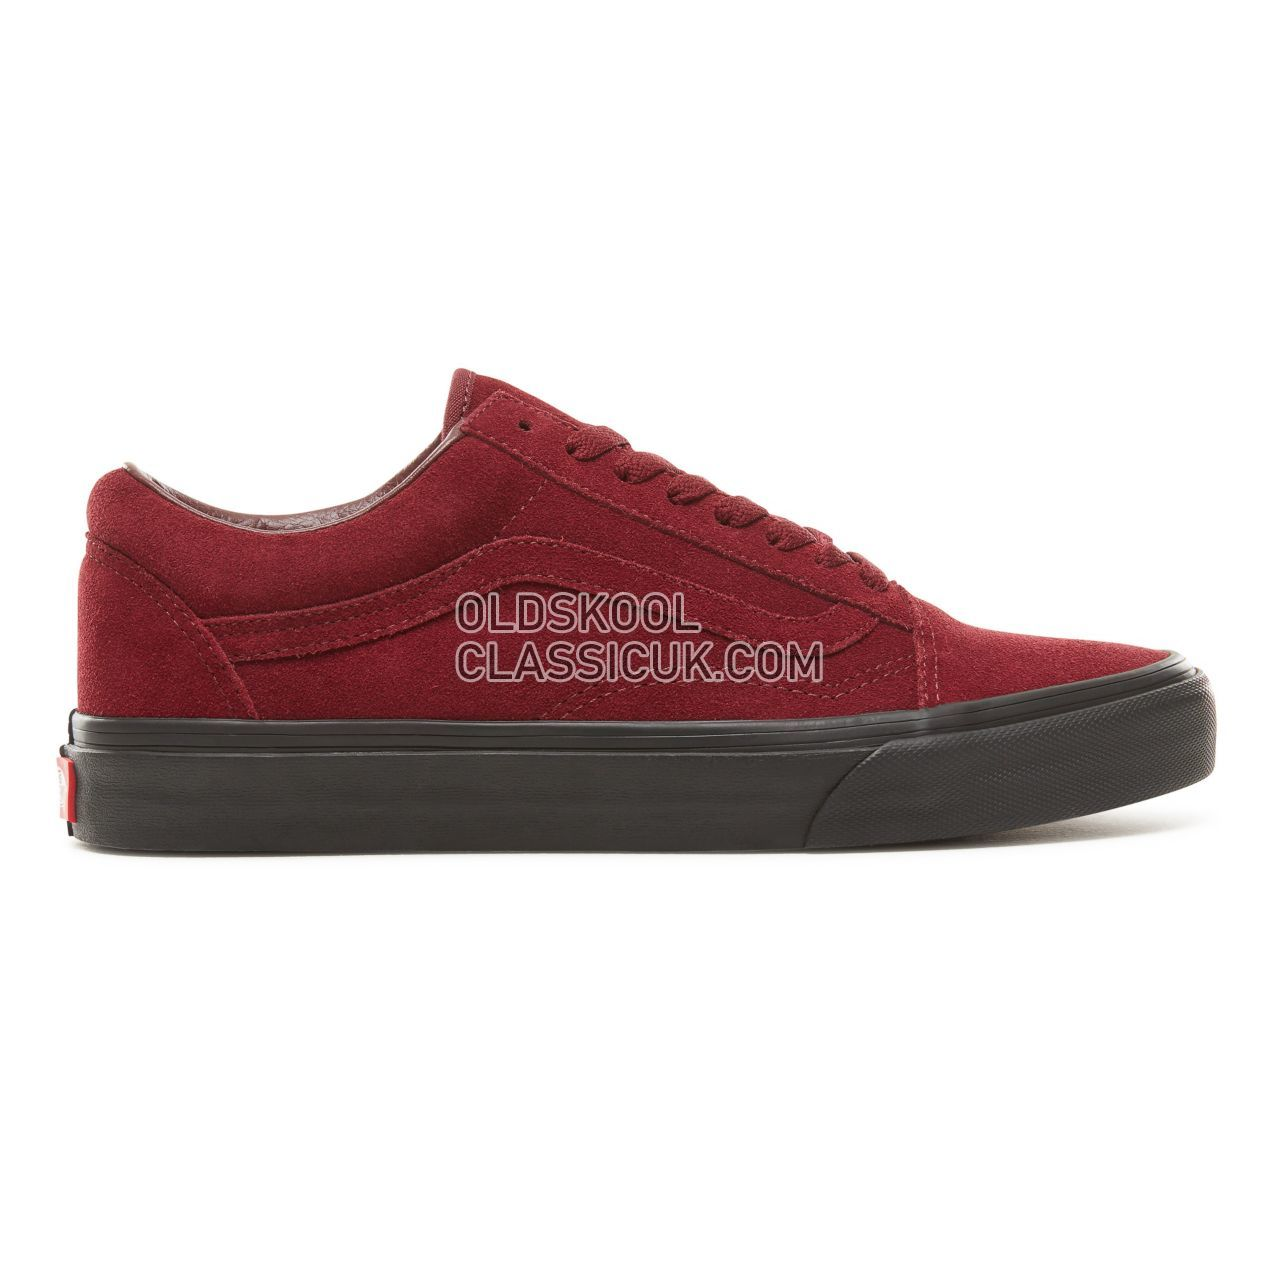 Vans Suede Black Outsole Old Skool Sneakers Mens Womens Unisex (Black Outsole) Port Royale/Black VA38G1UA4 Shoes